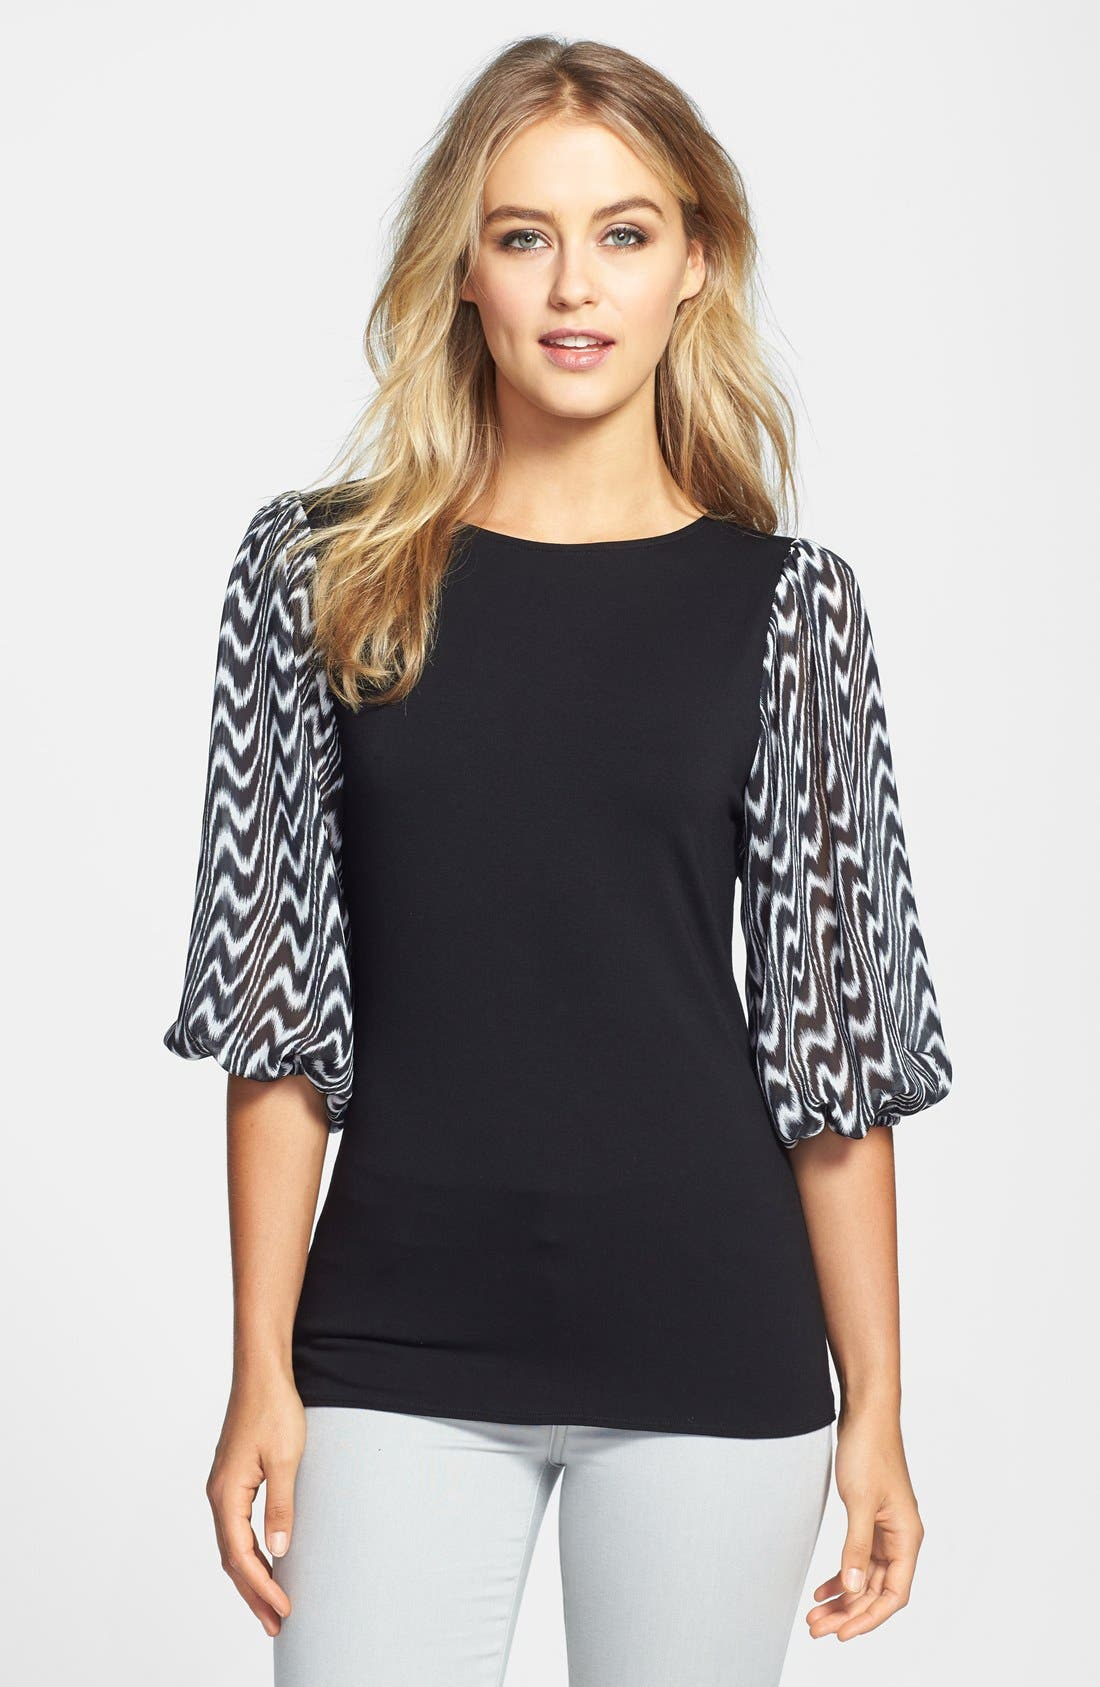 Main Image - Vince Camuto Print Chiffon Sleeve Stretch Knit Top